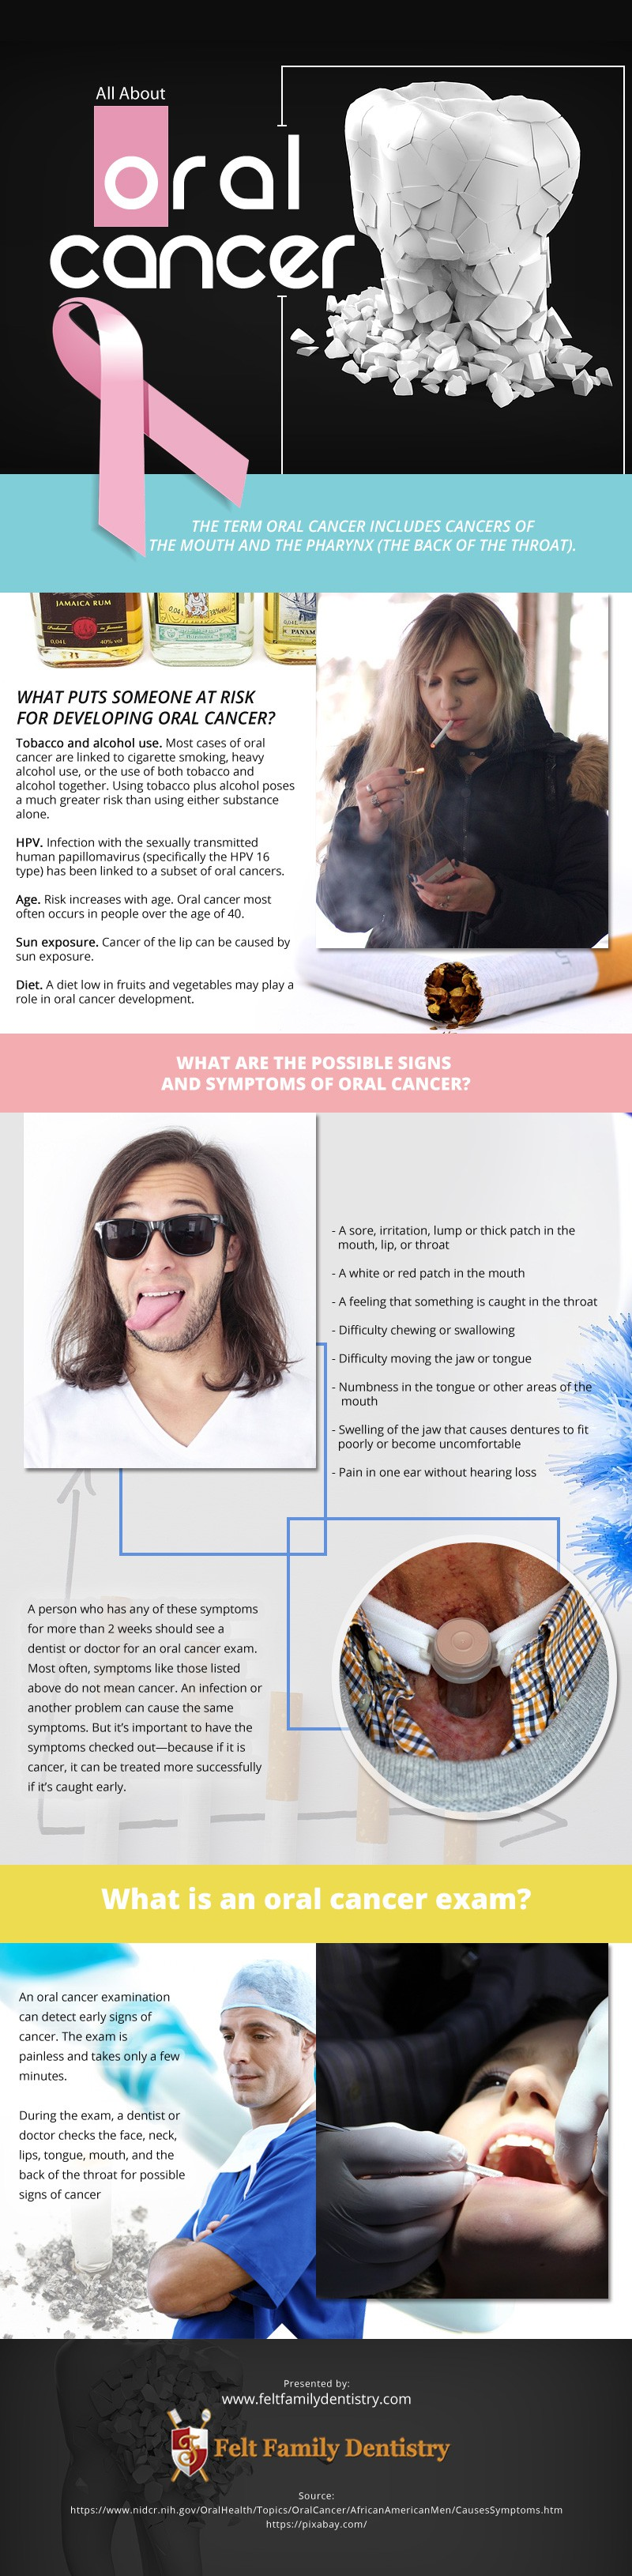 Oral-Cancer Infographic